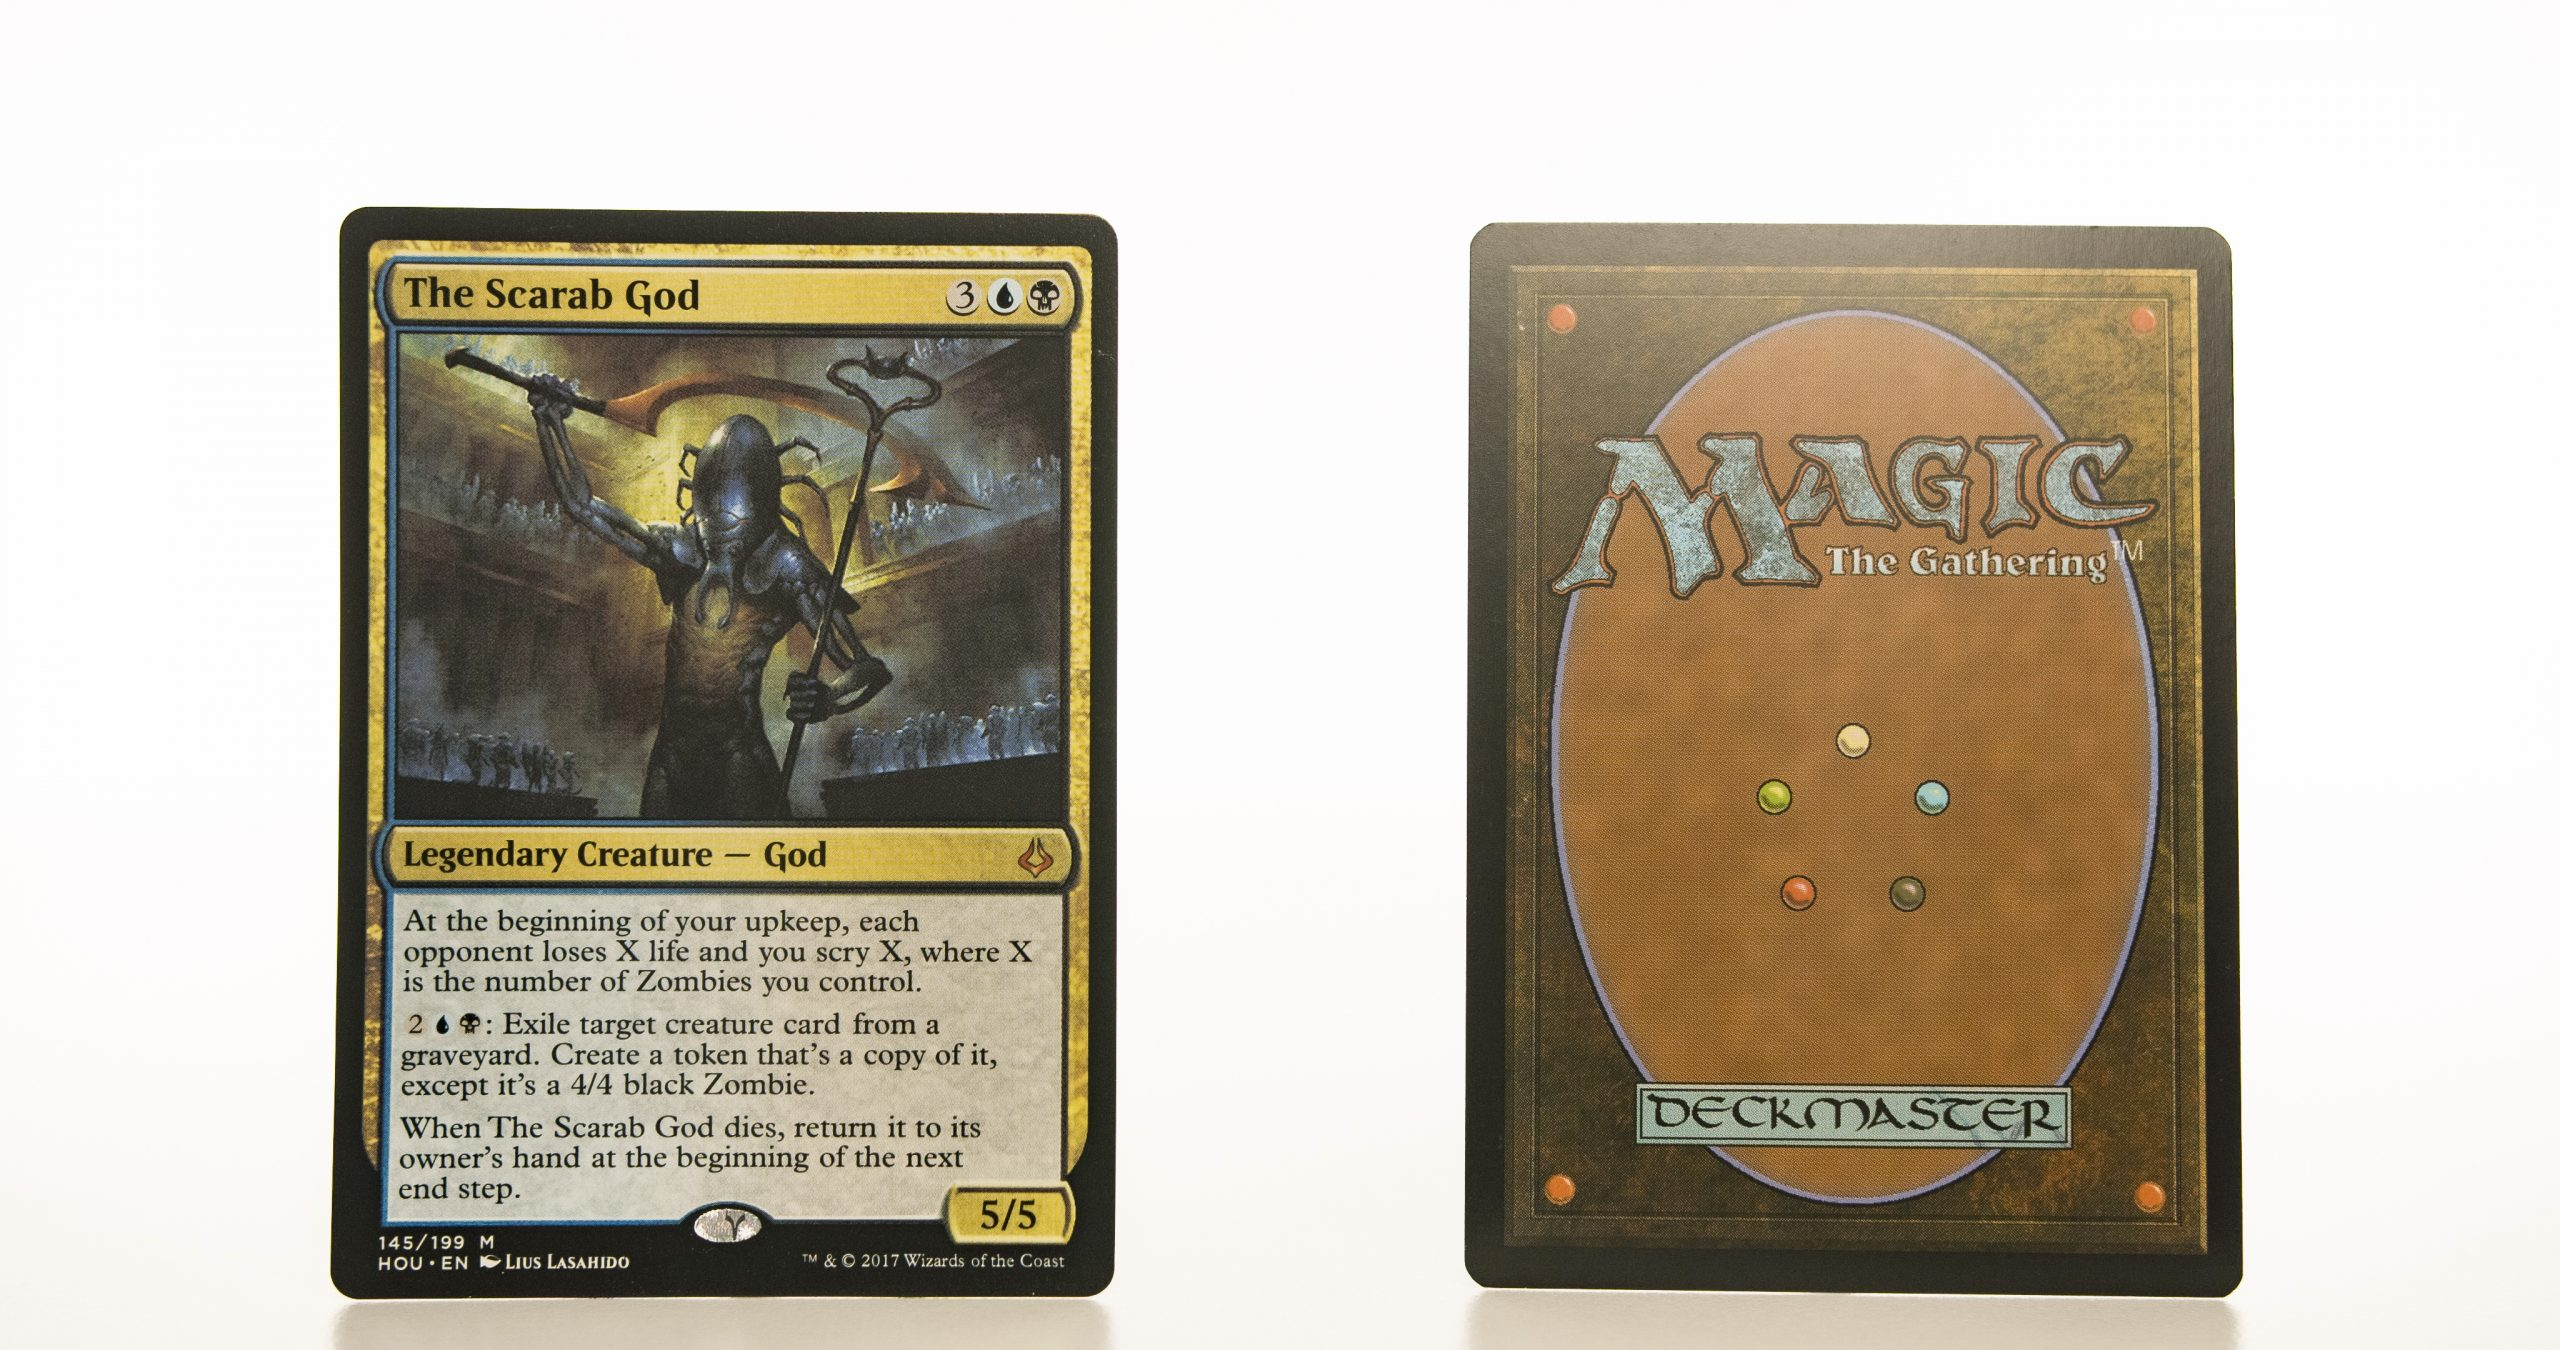 The Scarab God HOU mtg proxy magic the gathering tournament proxies GP FNM available